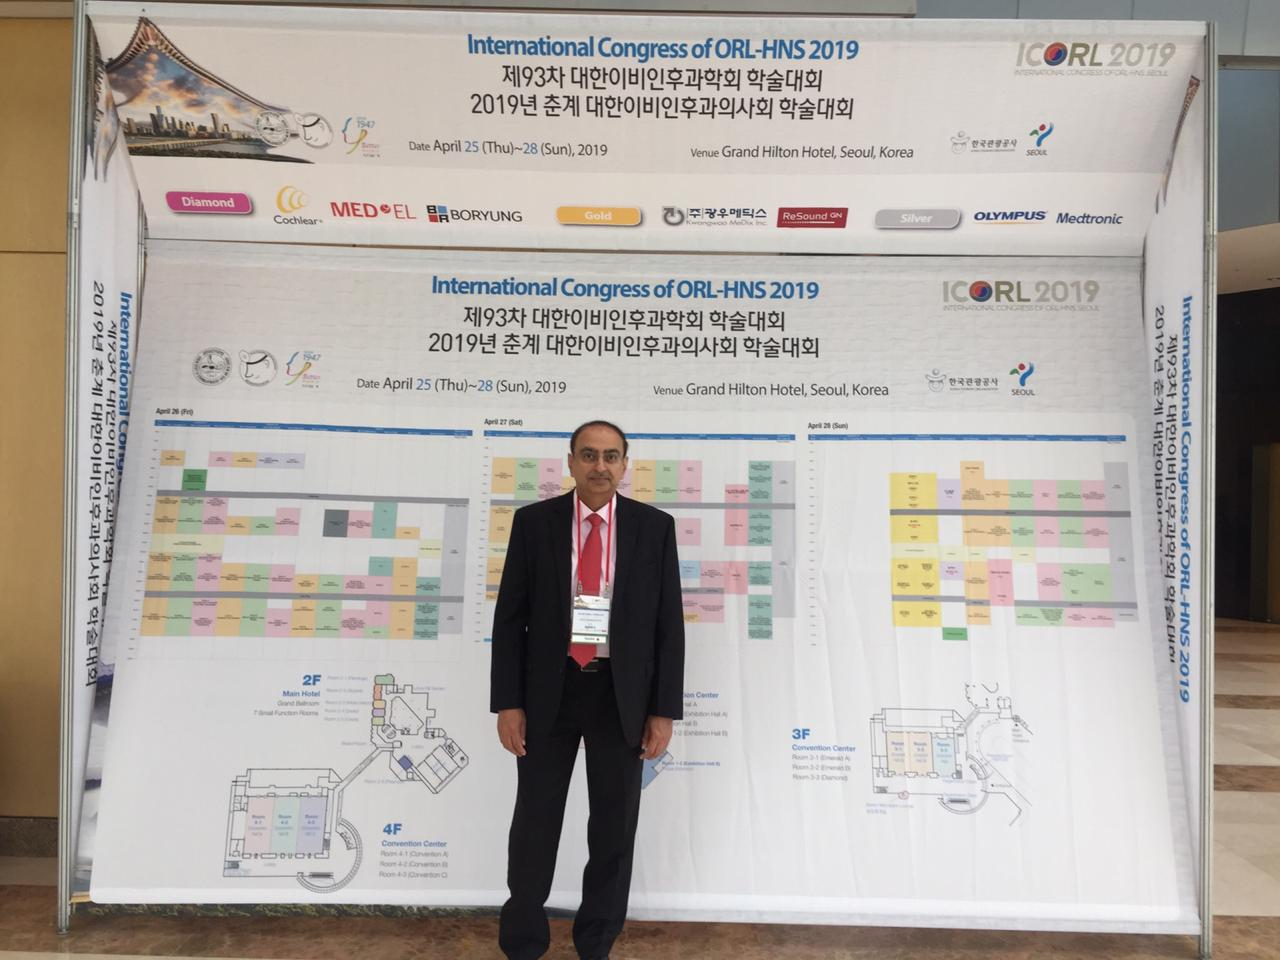 Dr. Rajendra Toprani - International Congress of ORL-HNS 2019 (ICORL 2019) Korea